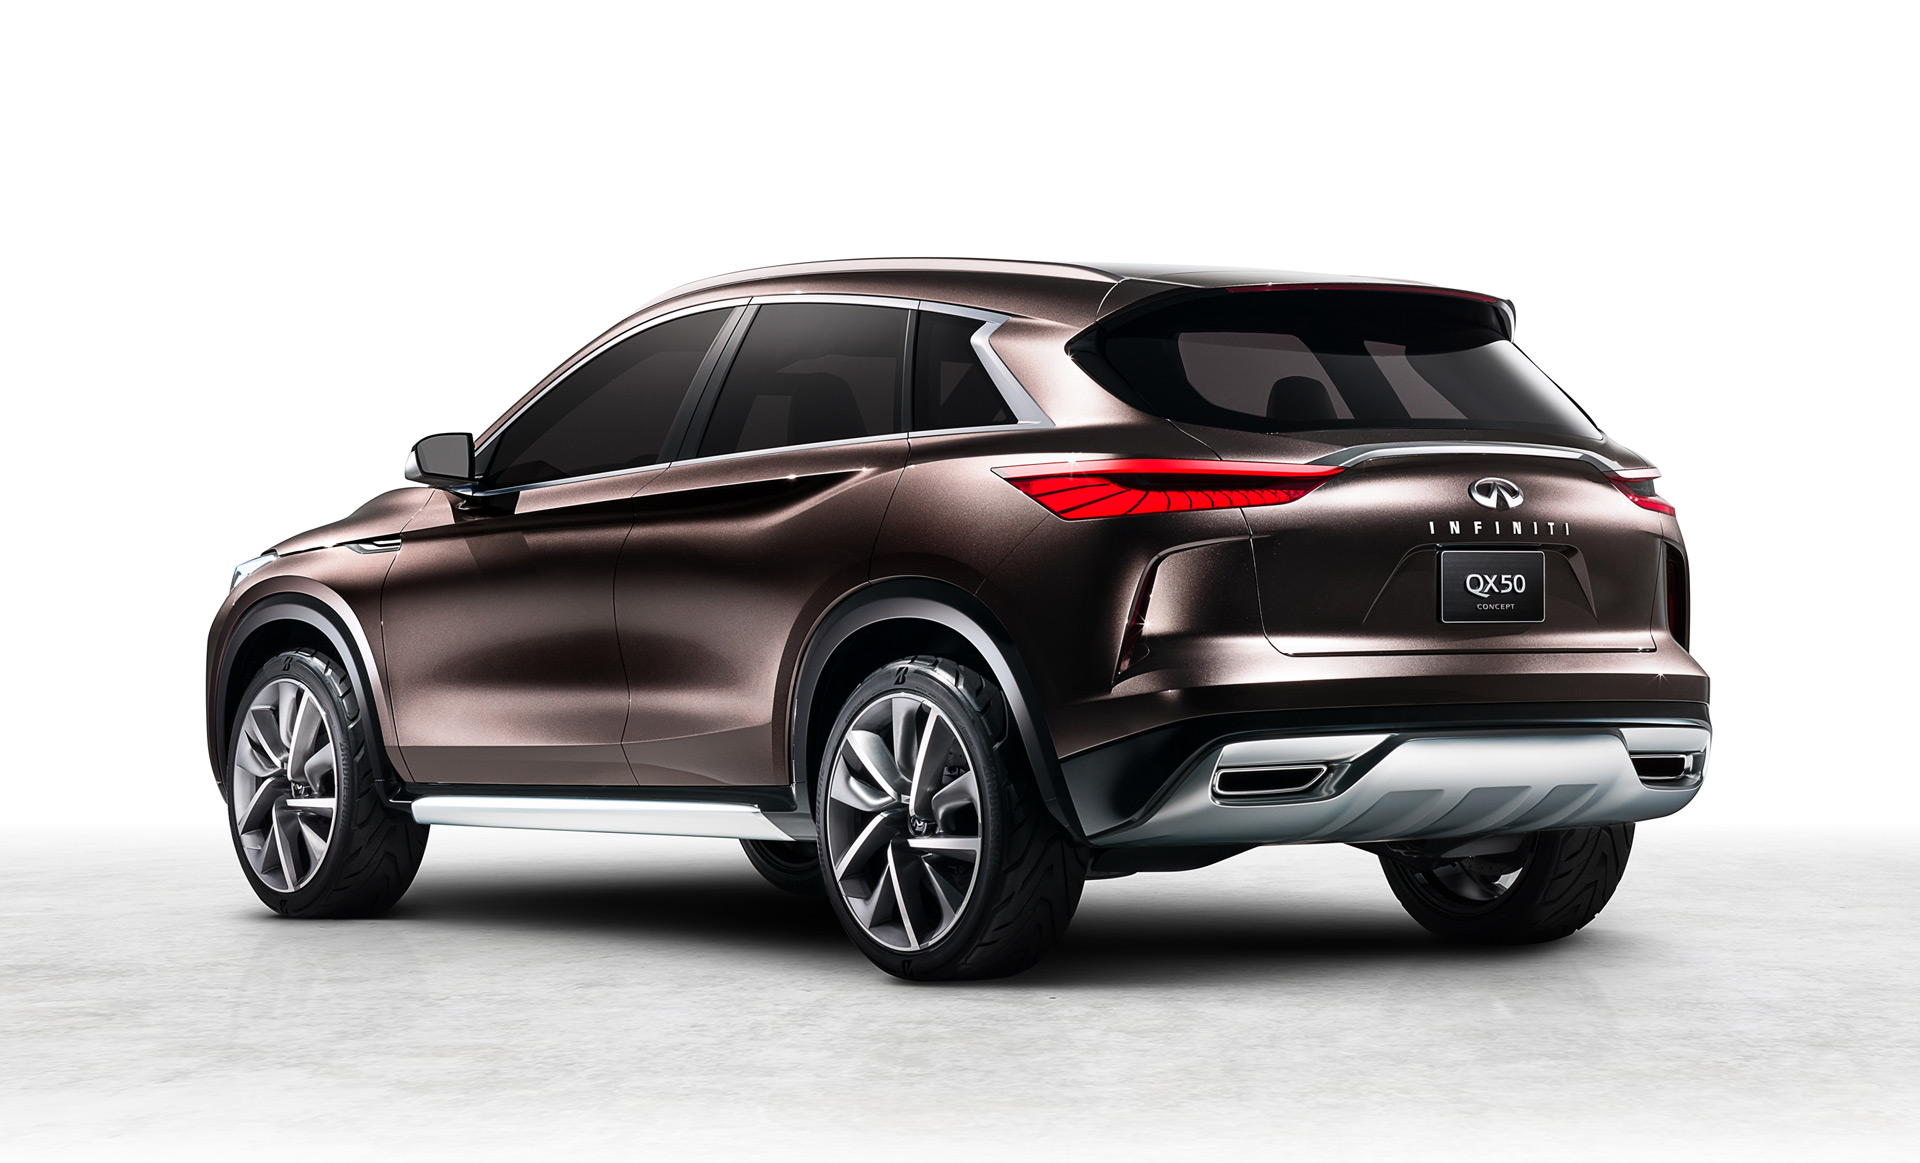 2020 Infiniti QX50 Hybrid Price and Specs